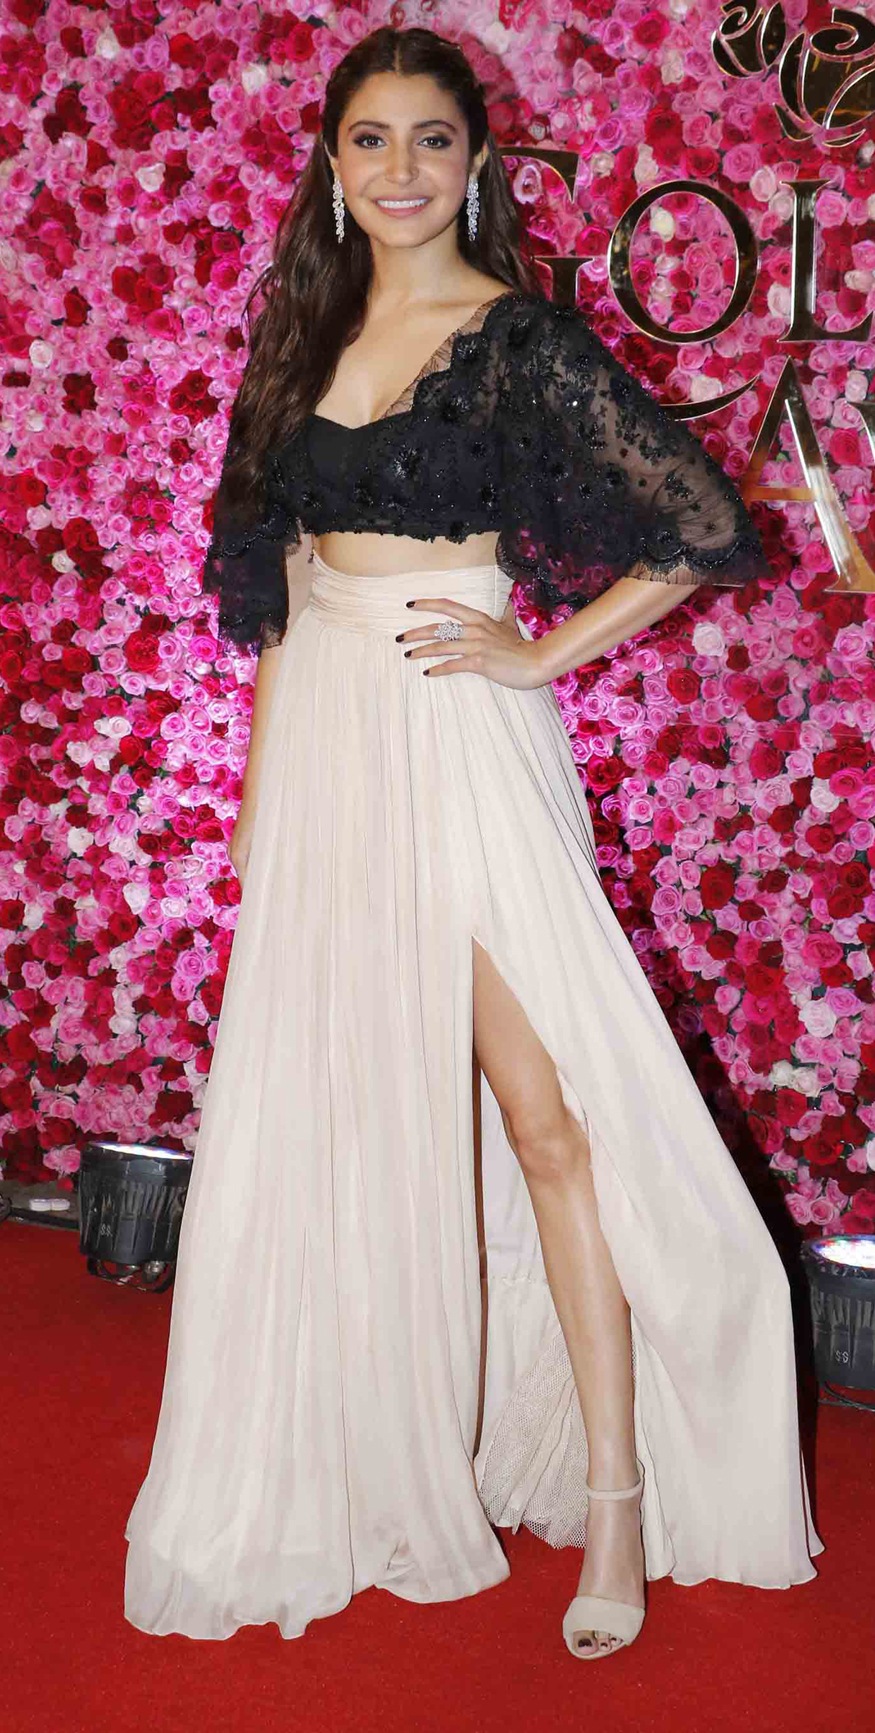 Anushka Sharma's best red carpet looks